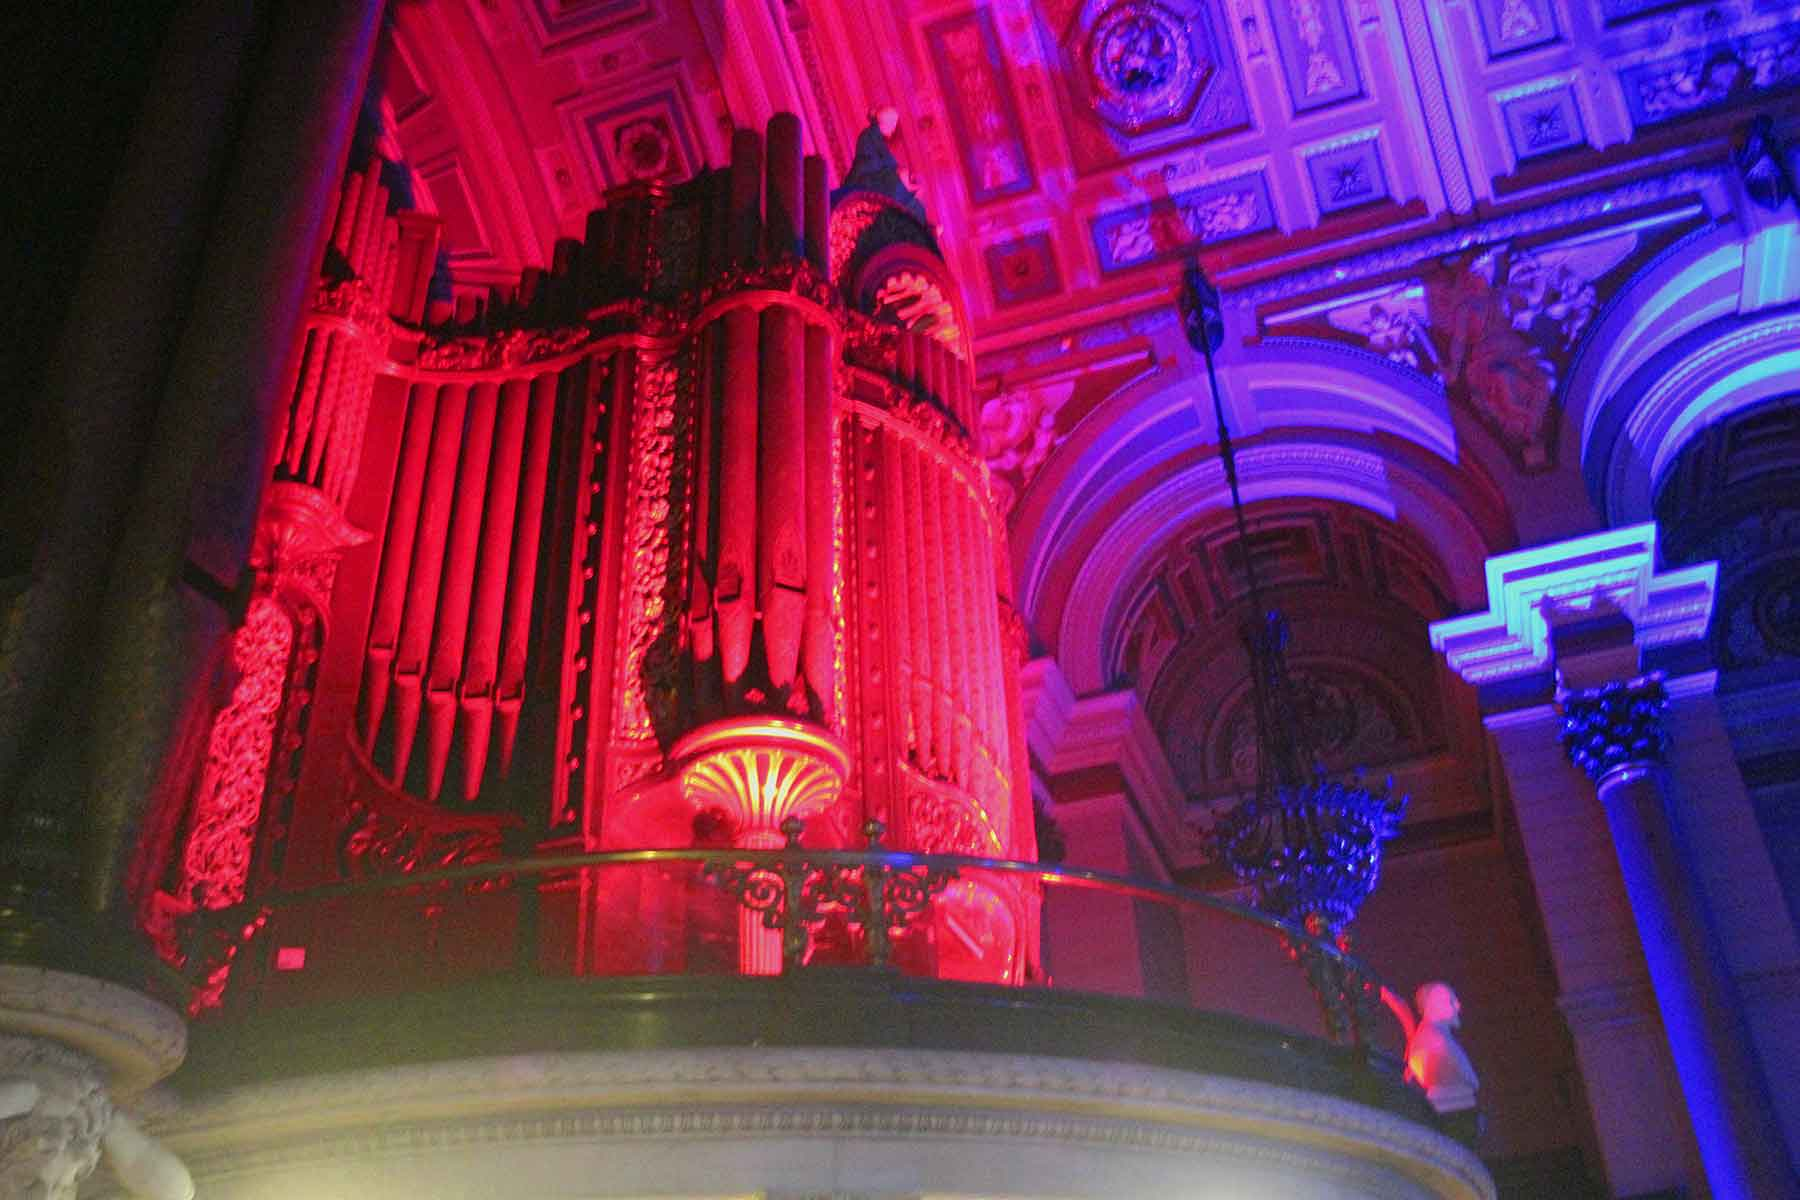 Image of St George's Hall in Liverpool with LED up-lighting lighting the massive organ.